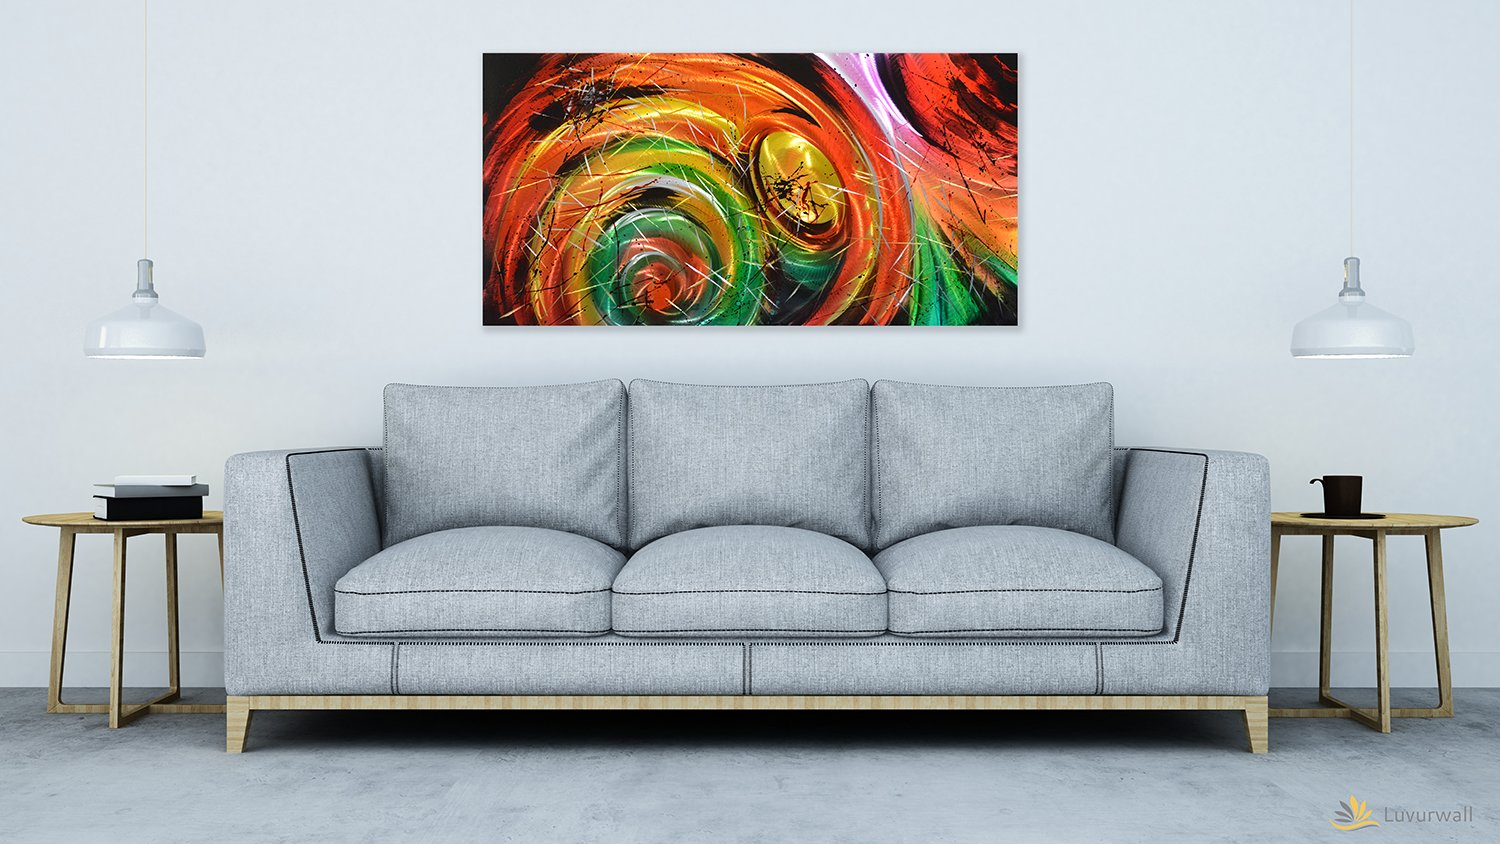 Luvurwall Circular Abstract Metal Wall Art, Metal Wall Art - Luvurwall